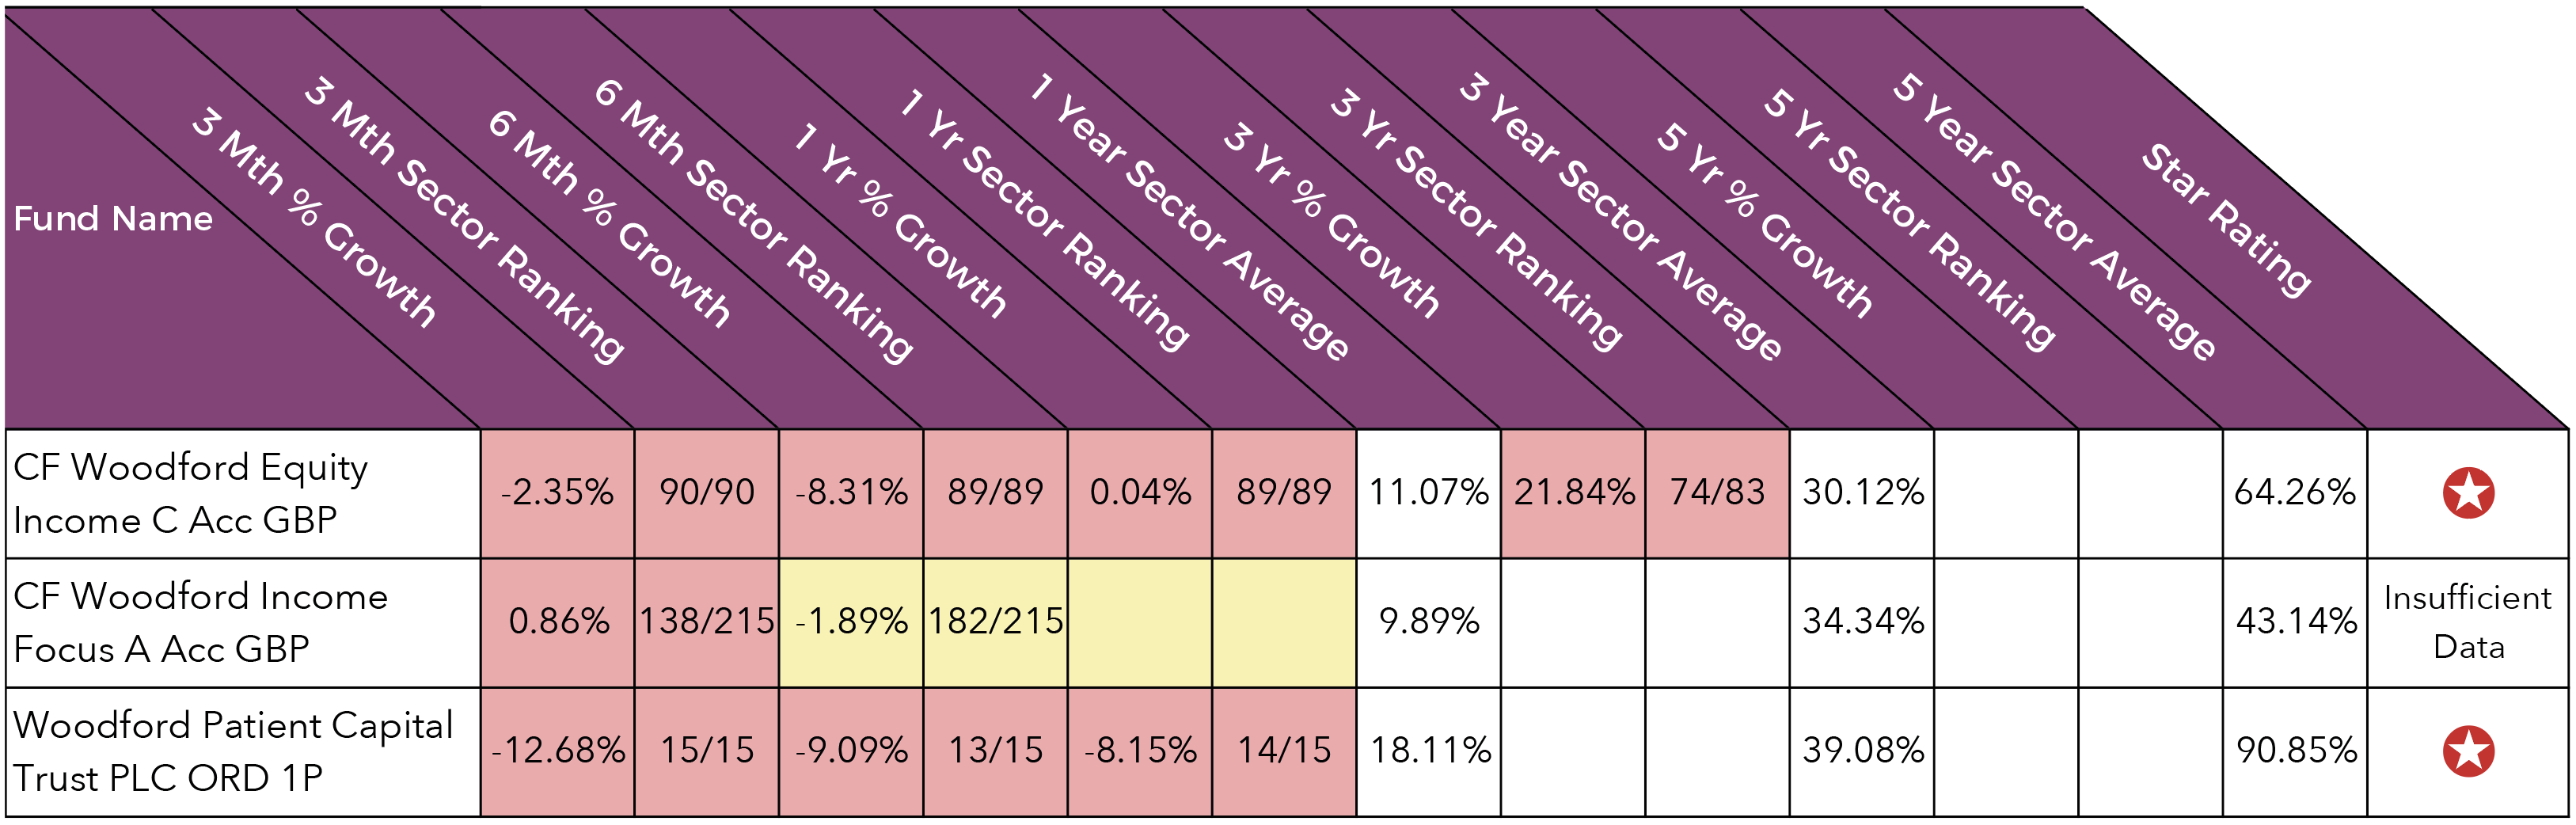 Woodford fund performance.png